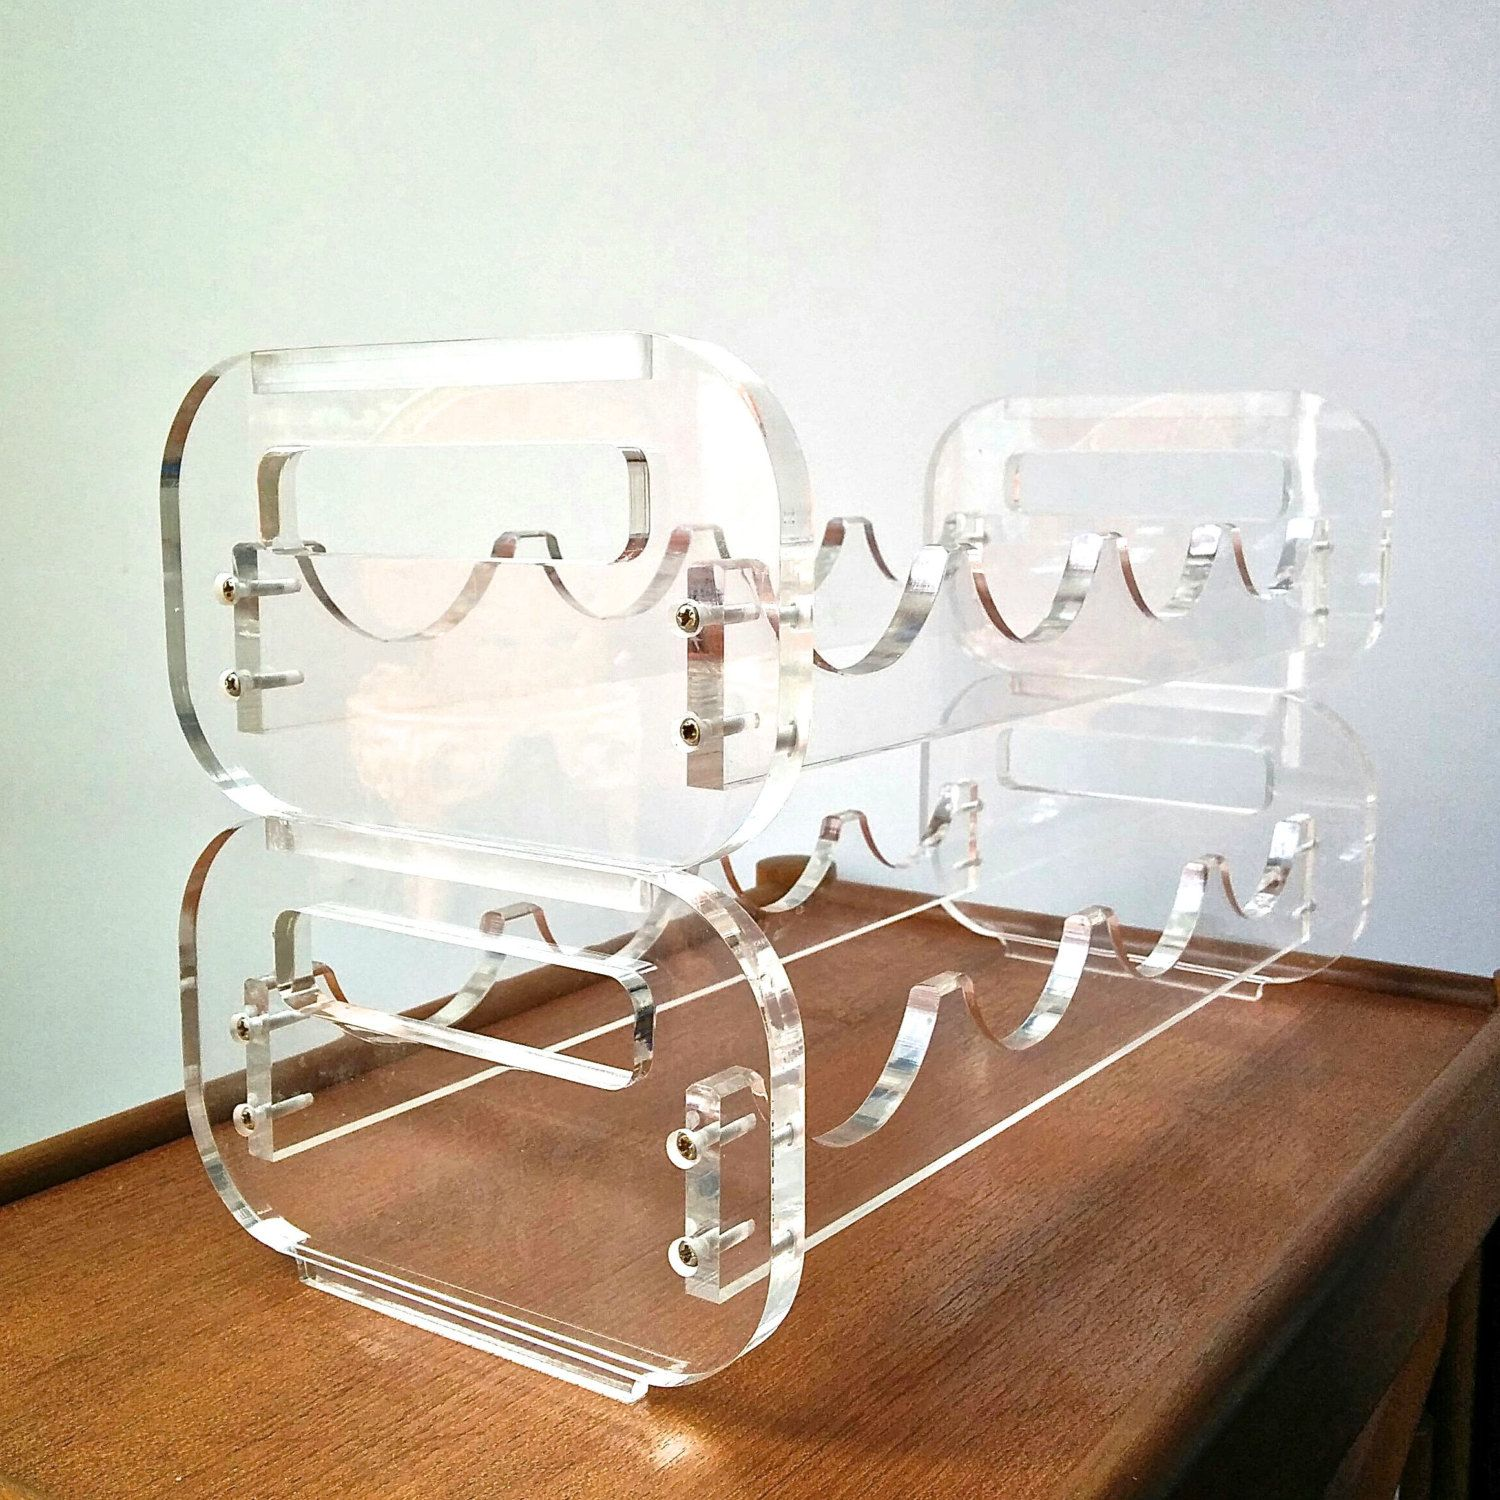 sculpture mount dazzling glass wall design ideas furniture great clear racks material with kitchen metal wine rack